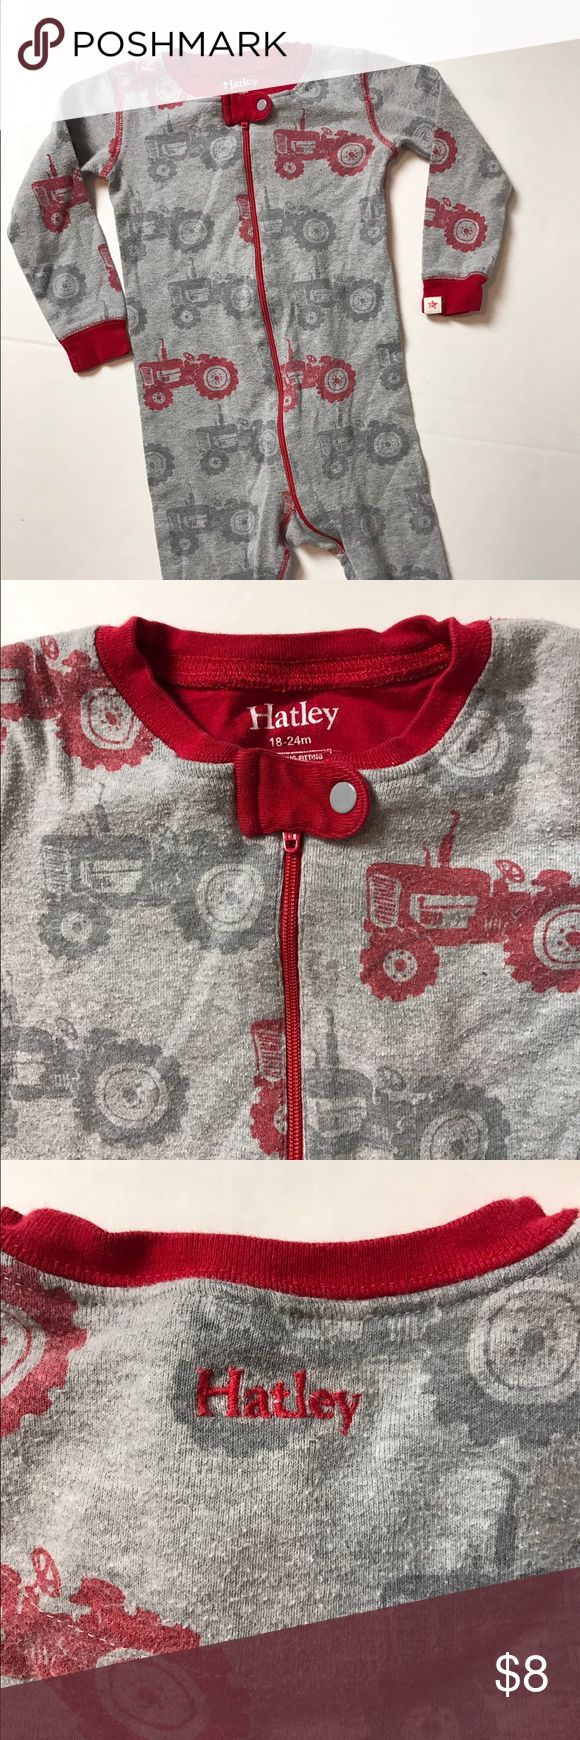 Hatley Union Suit Pajamas Zip-up footless pajamas by Hatley. Grey with red tractor print. GUC -- wash wear. Soft and comfy. Genuine Hatley. Smoke-free home. Hatley Pajamas